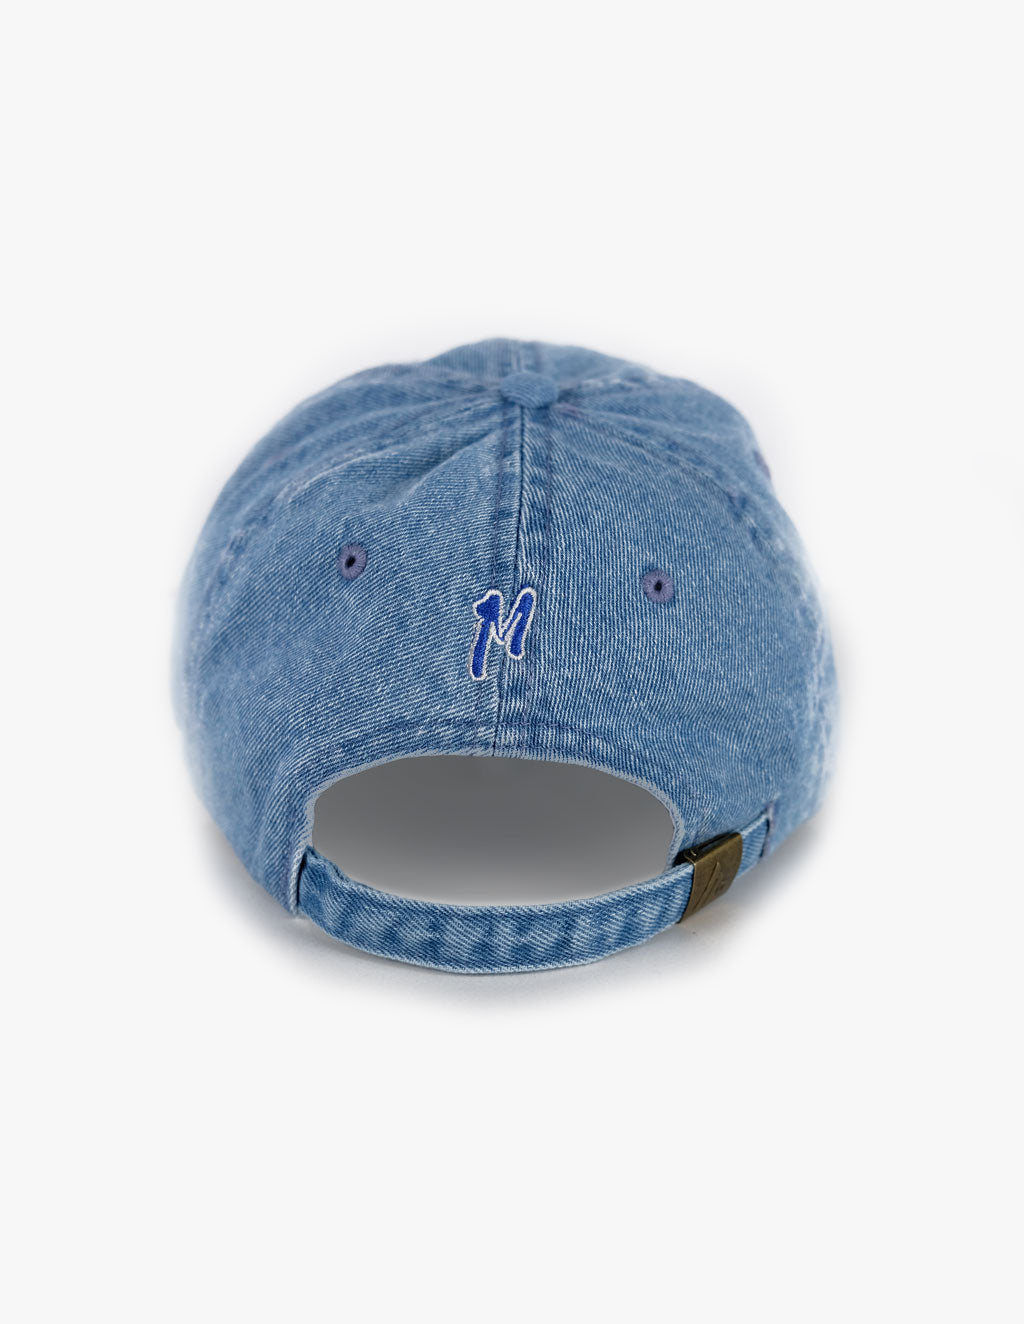 LIGHT WASH DENIM BASEBALL HAT